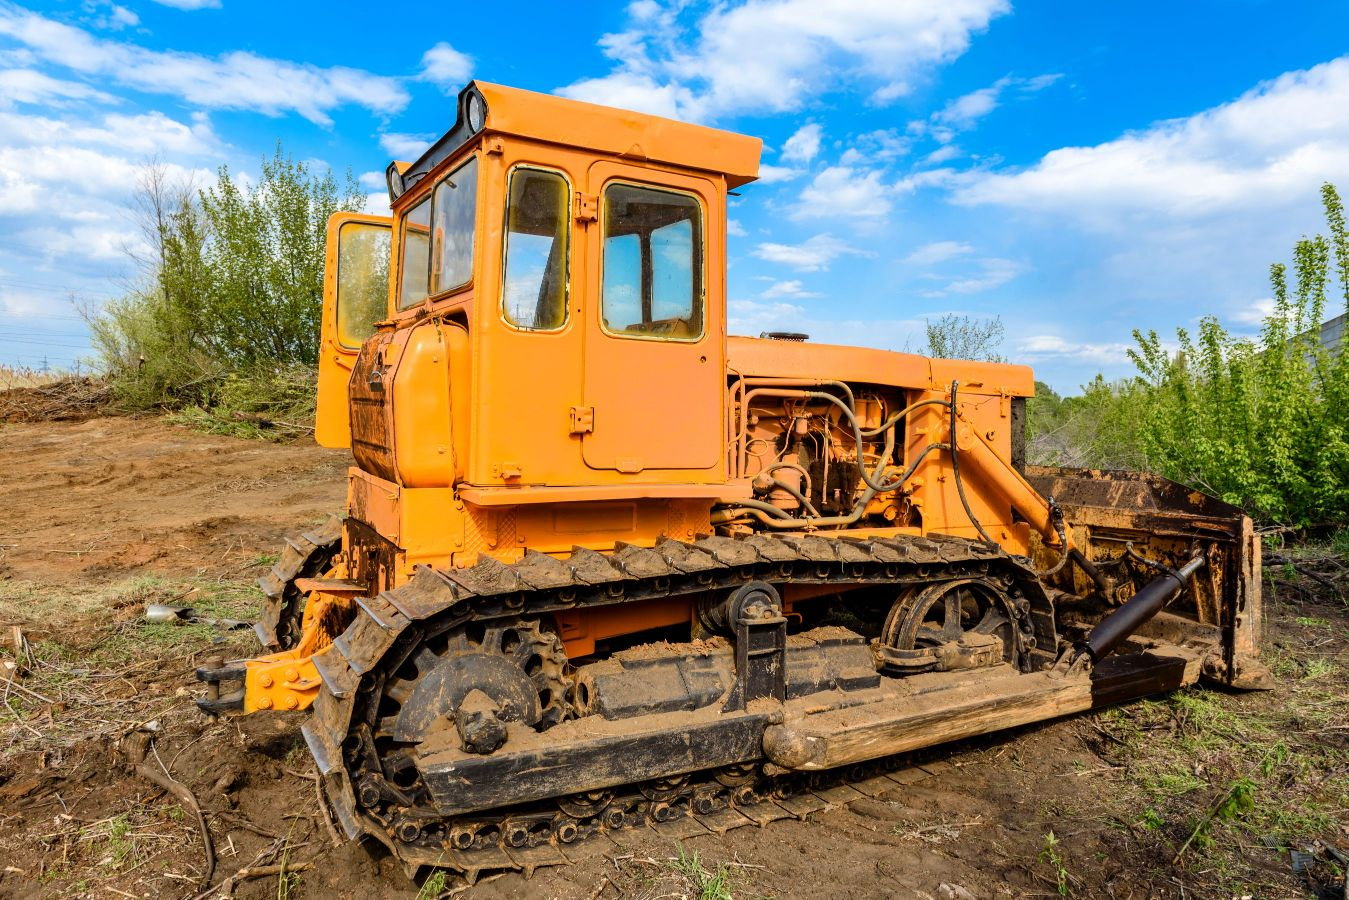 Plant and Equipment for Wet Hire